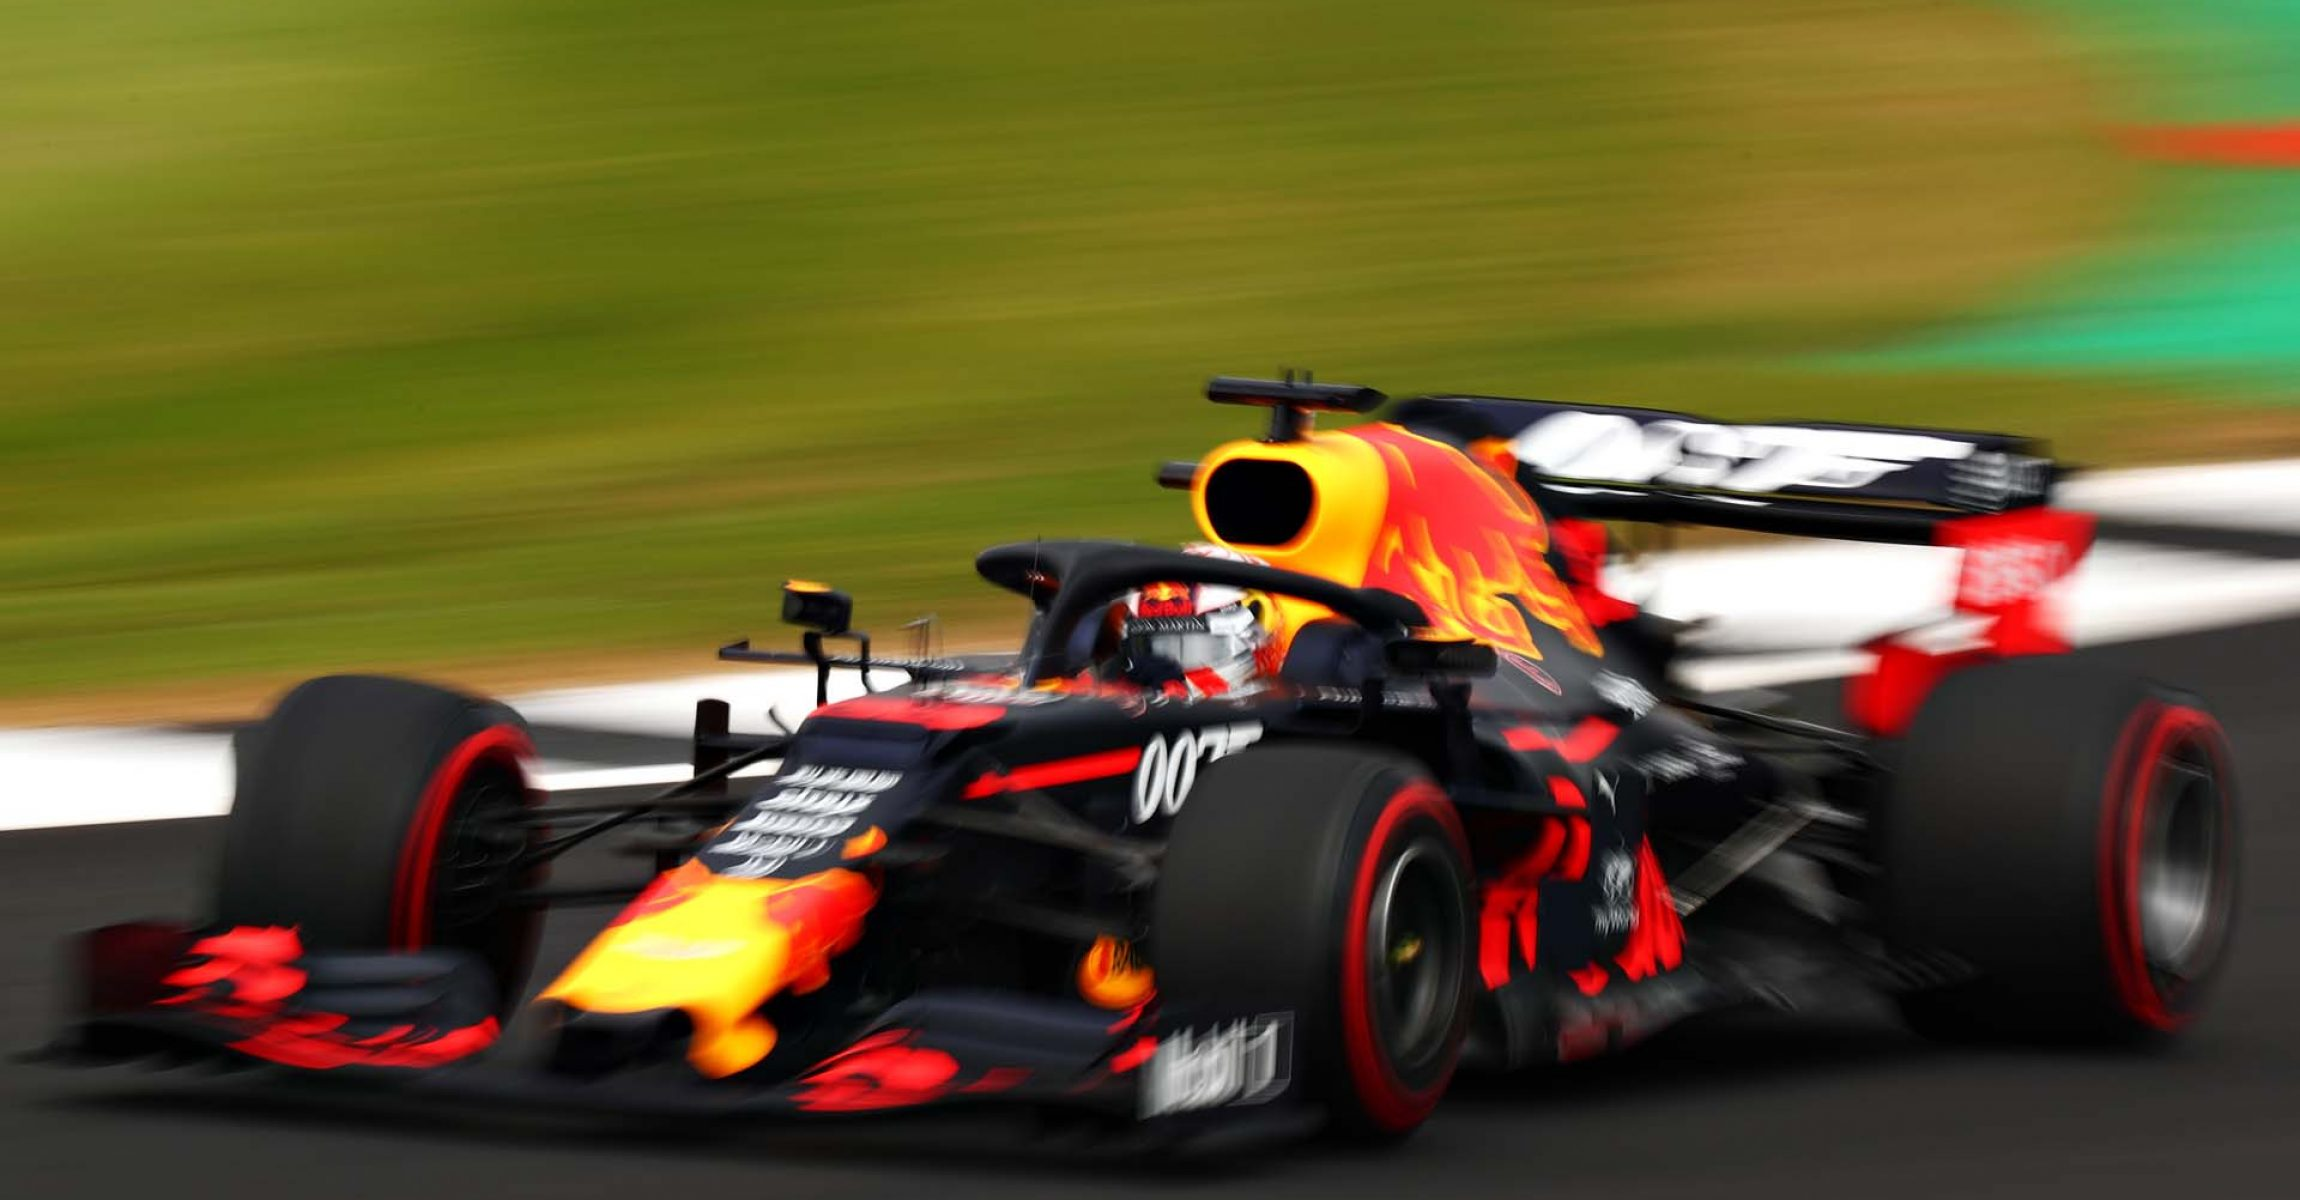 NORTHAMPTON, ENGLAND - JULY 13: Max Verstappen of the Netherlands driving the (33) Aston Martin Red Bull Racing RB15 on track during qualifying for the F1 Grand Prix of Great Britain at Silverstone on July 13, 2019 in Northampton, England. (Photo by Dan Istitene/Getty Images) // Getty Images / Red Bull Content Pool // AP-1ZXEXZSSS2111 // Usage for editorial use only // Please go to www.redbullcontentpool.com for further information. //